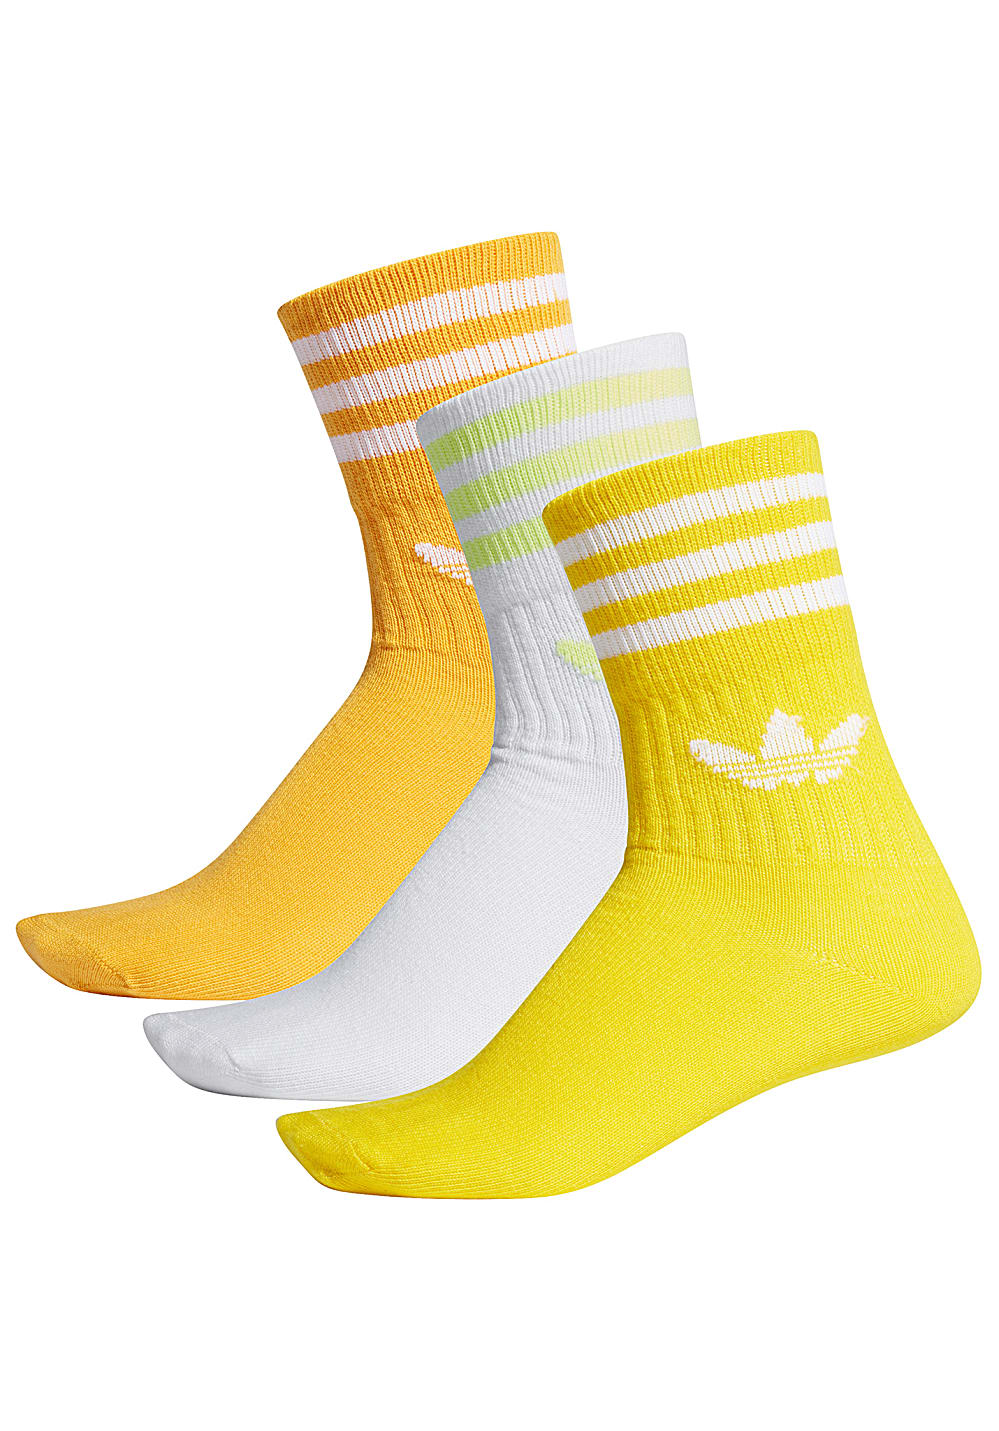 ADIDAS ORIGINALS Mid Cut Crew - Socks - Yellow - Planet Sports